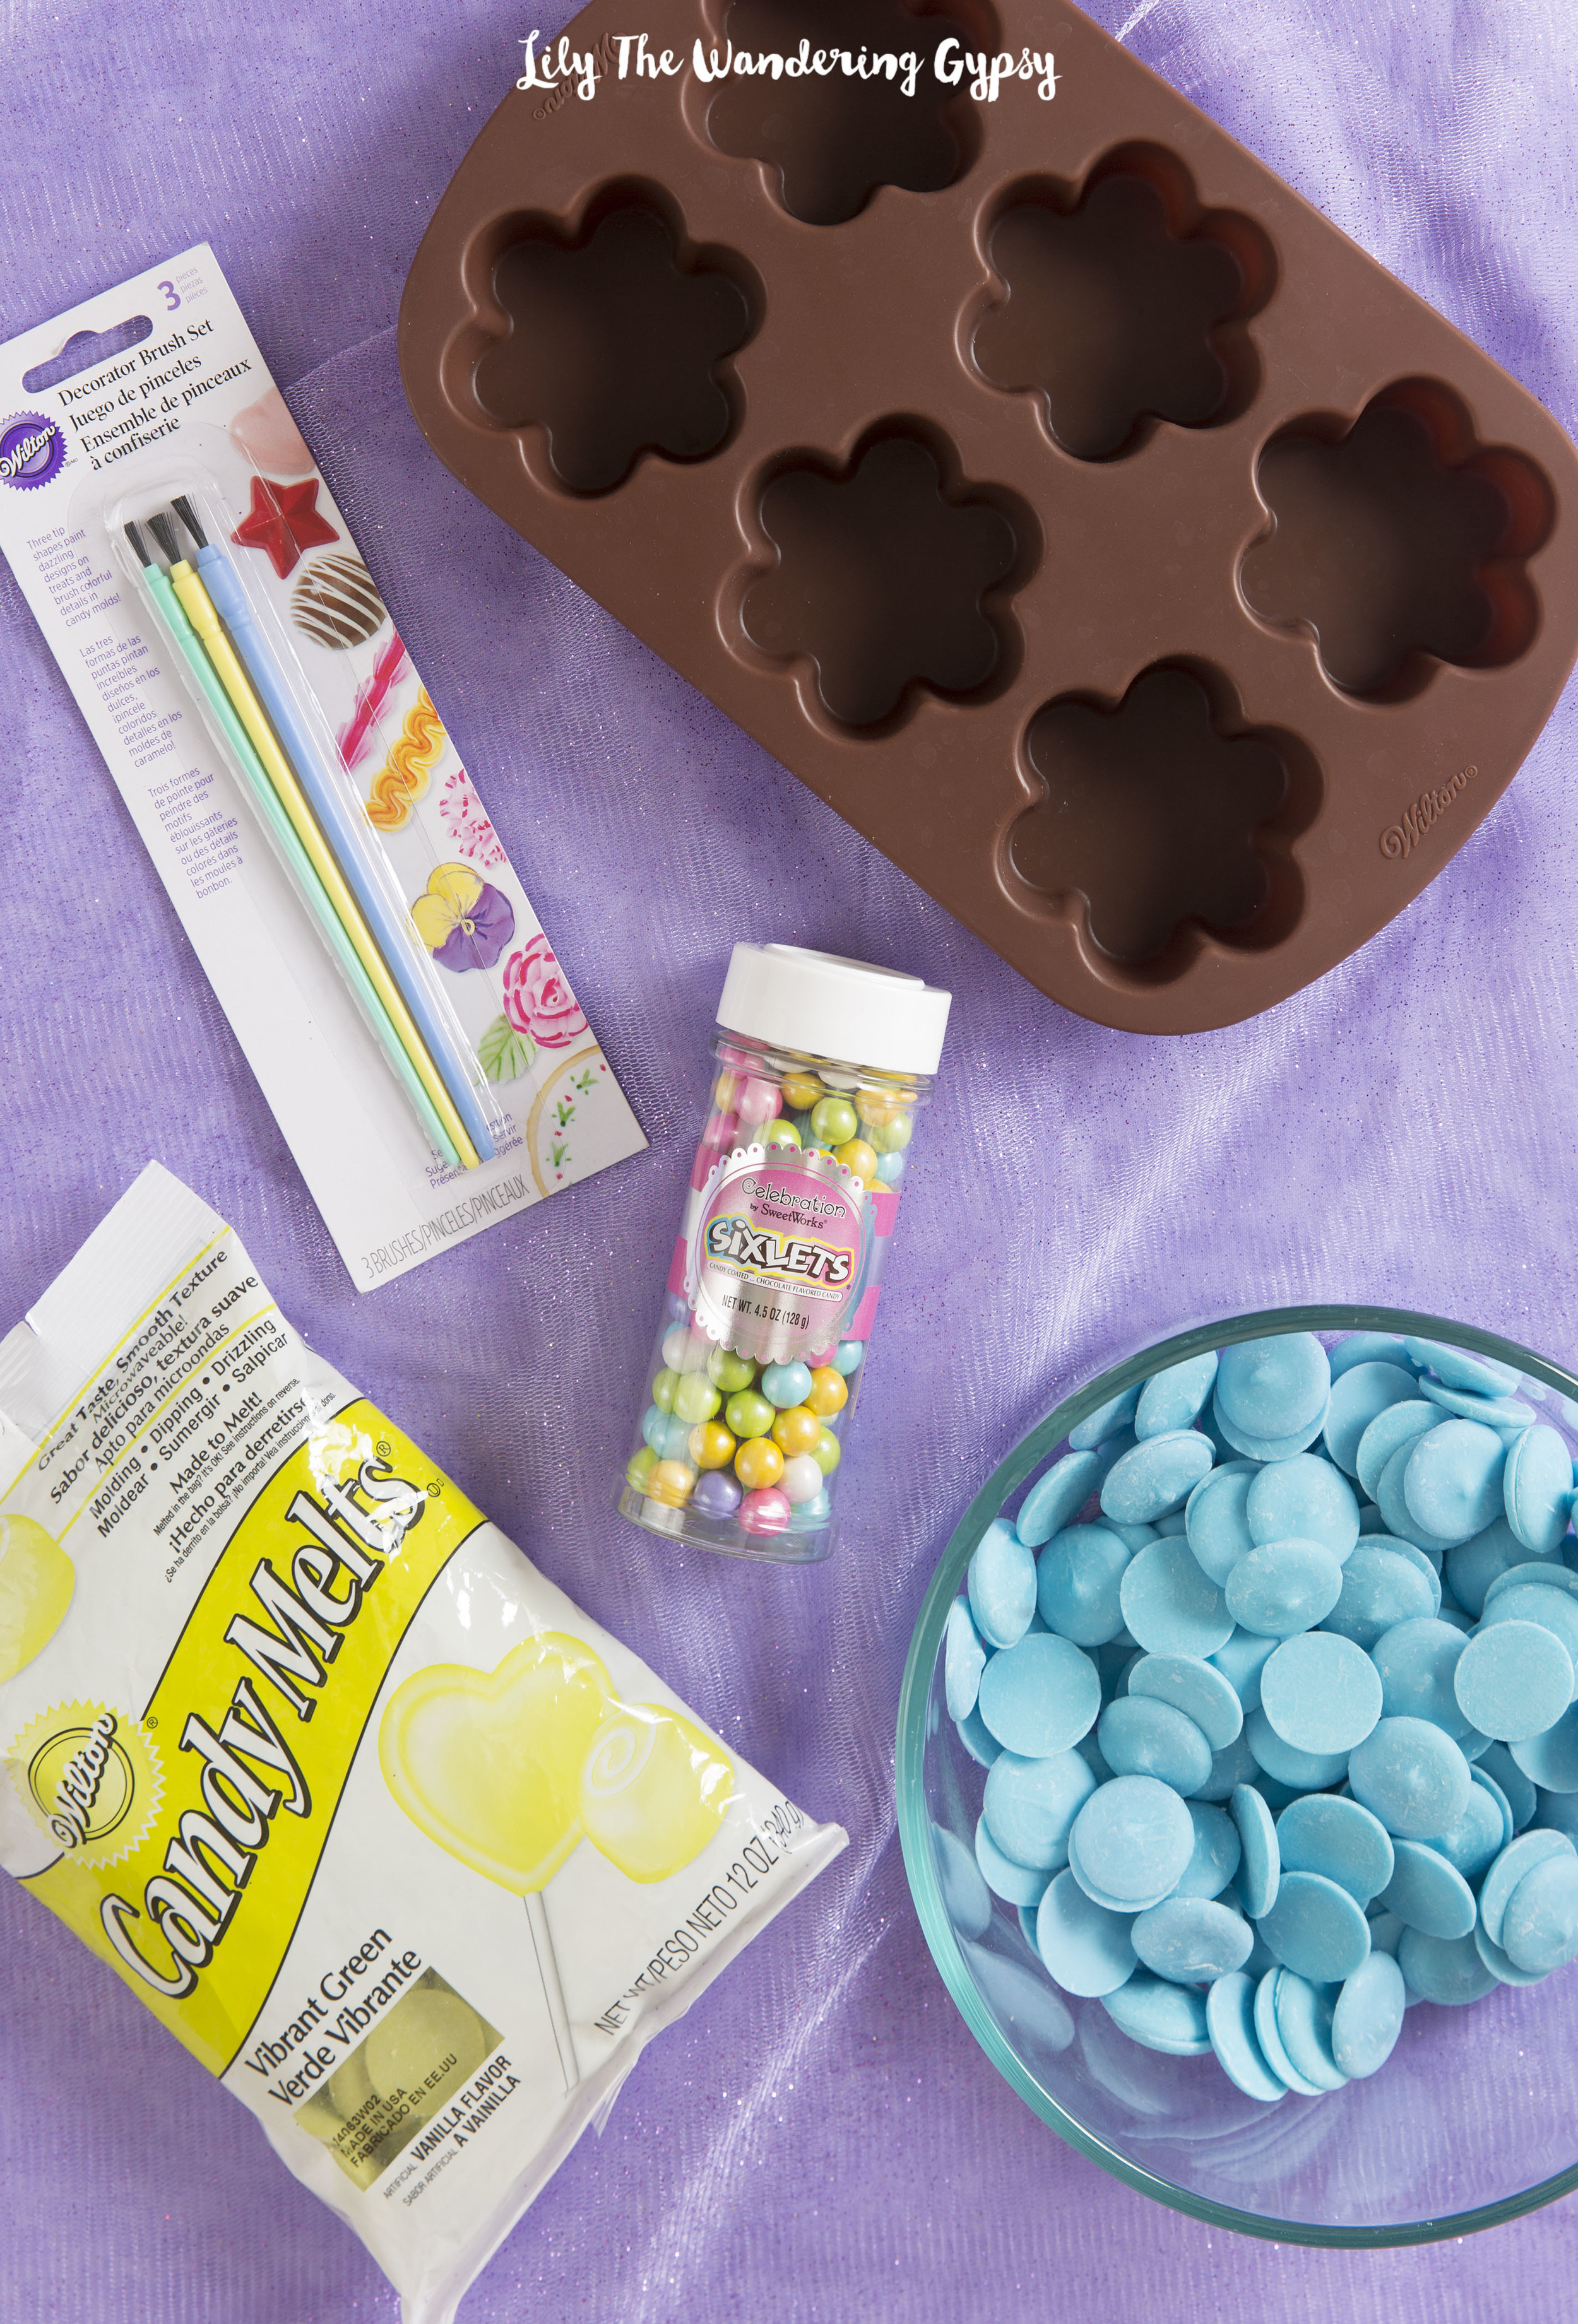 How To Make Blooming Candies!